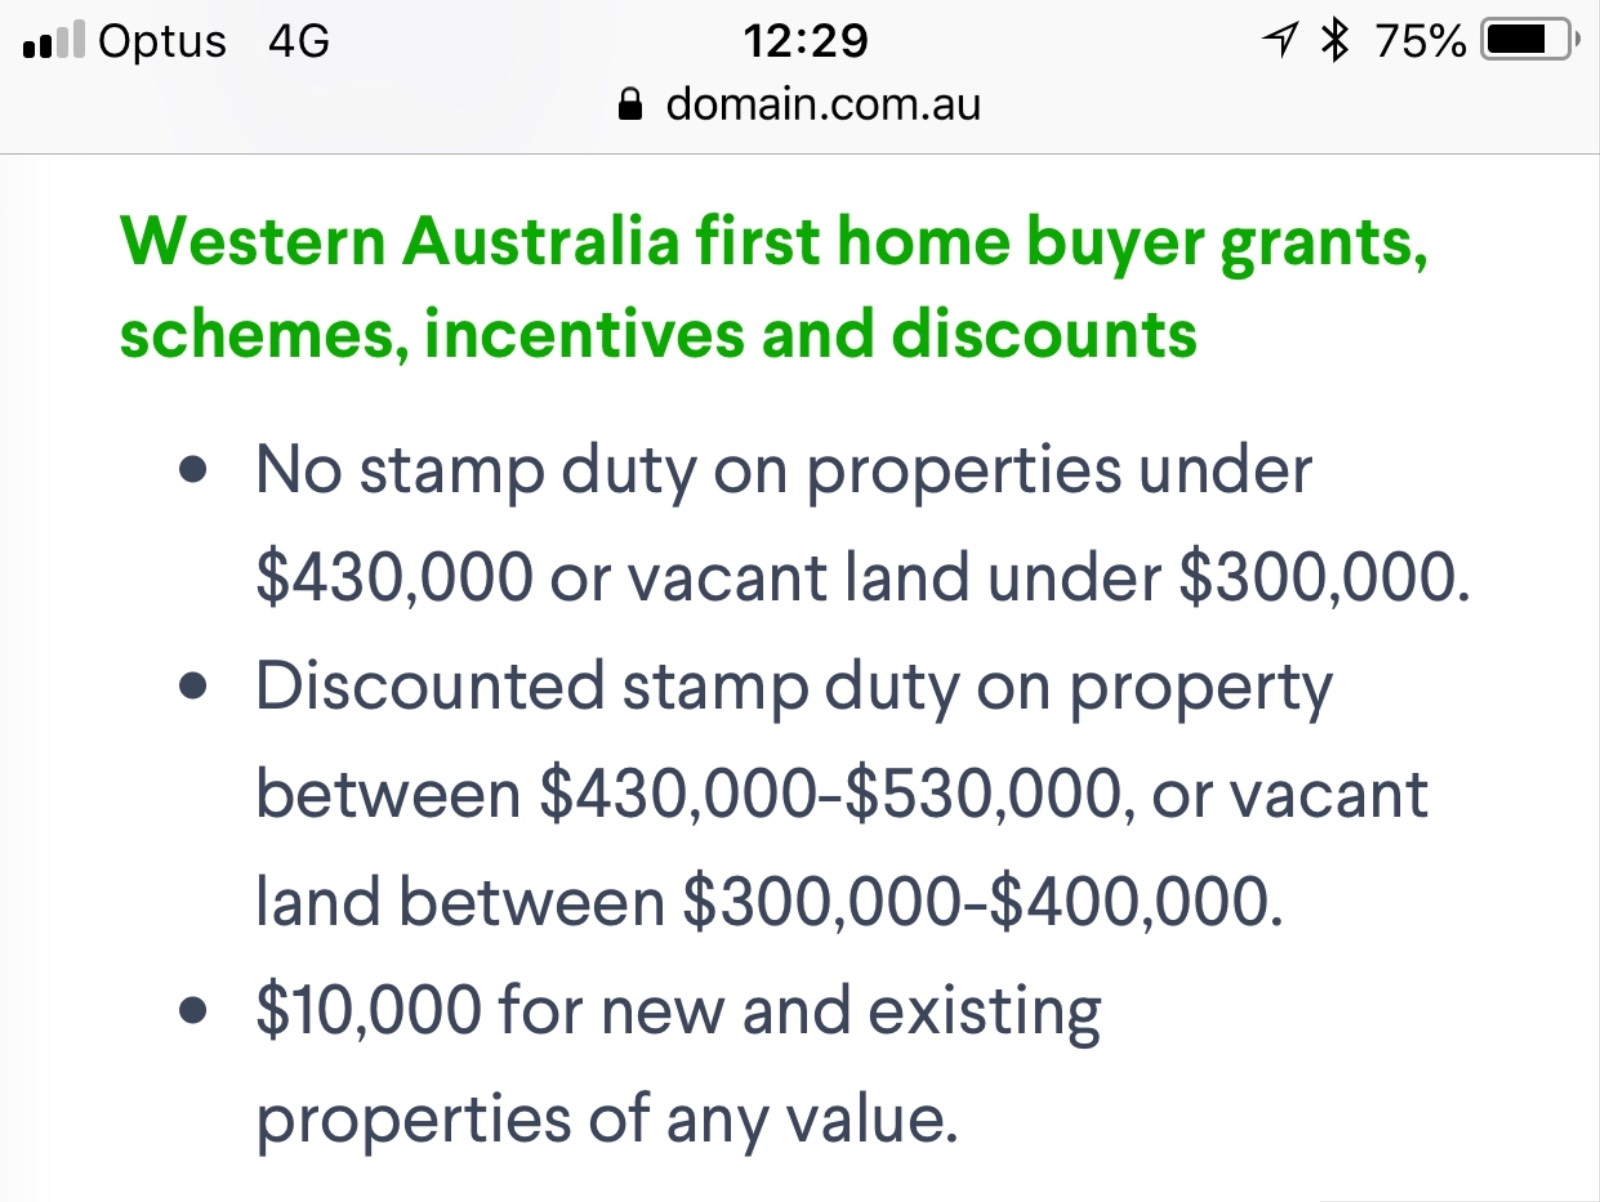 Stamp duty question